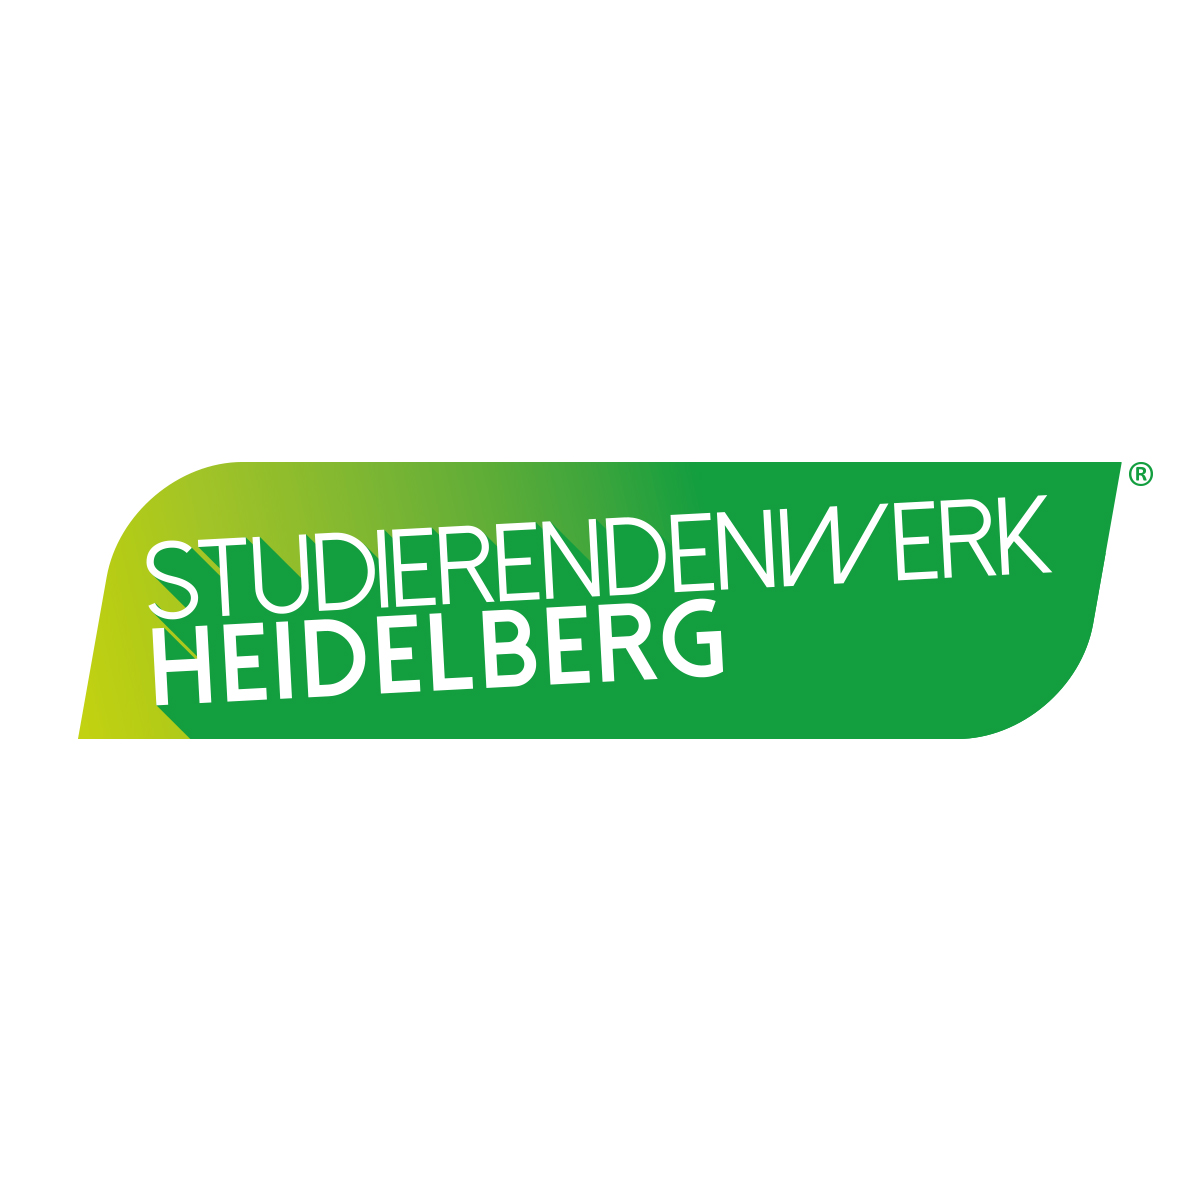 Grants and loans | Studierendenwerk Heidelberg